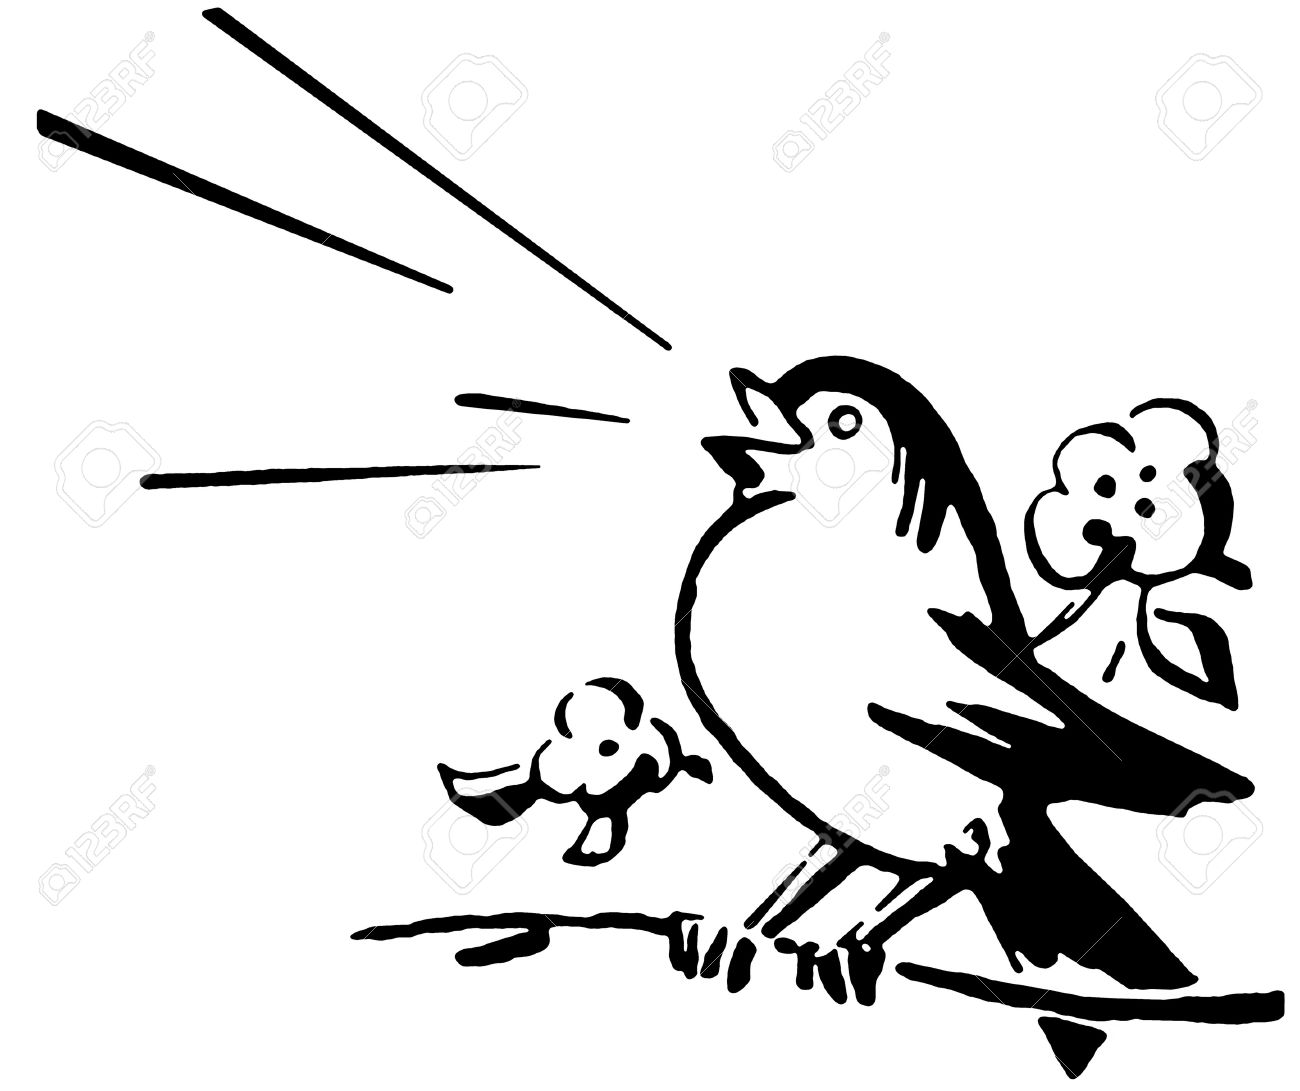 Singing bird clipart black and white 2 » Clipart Station.